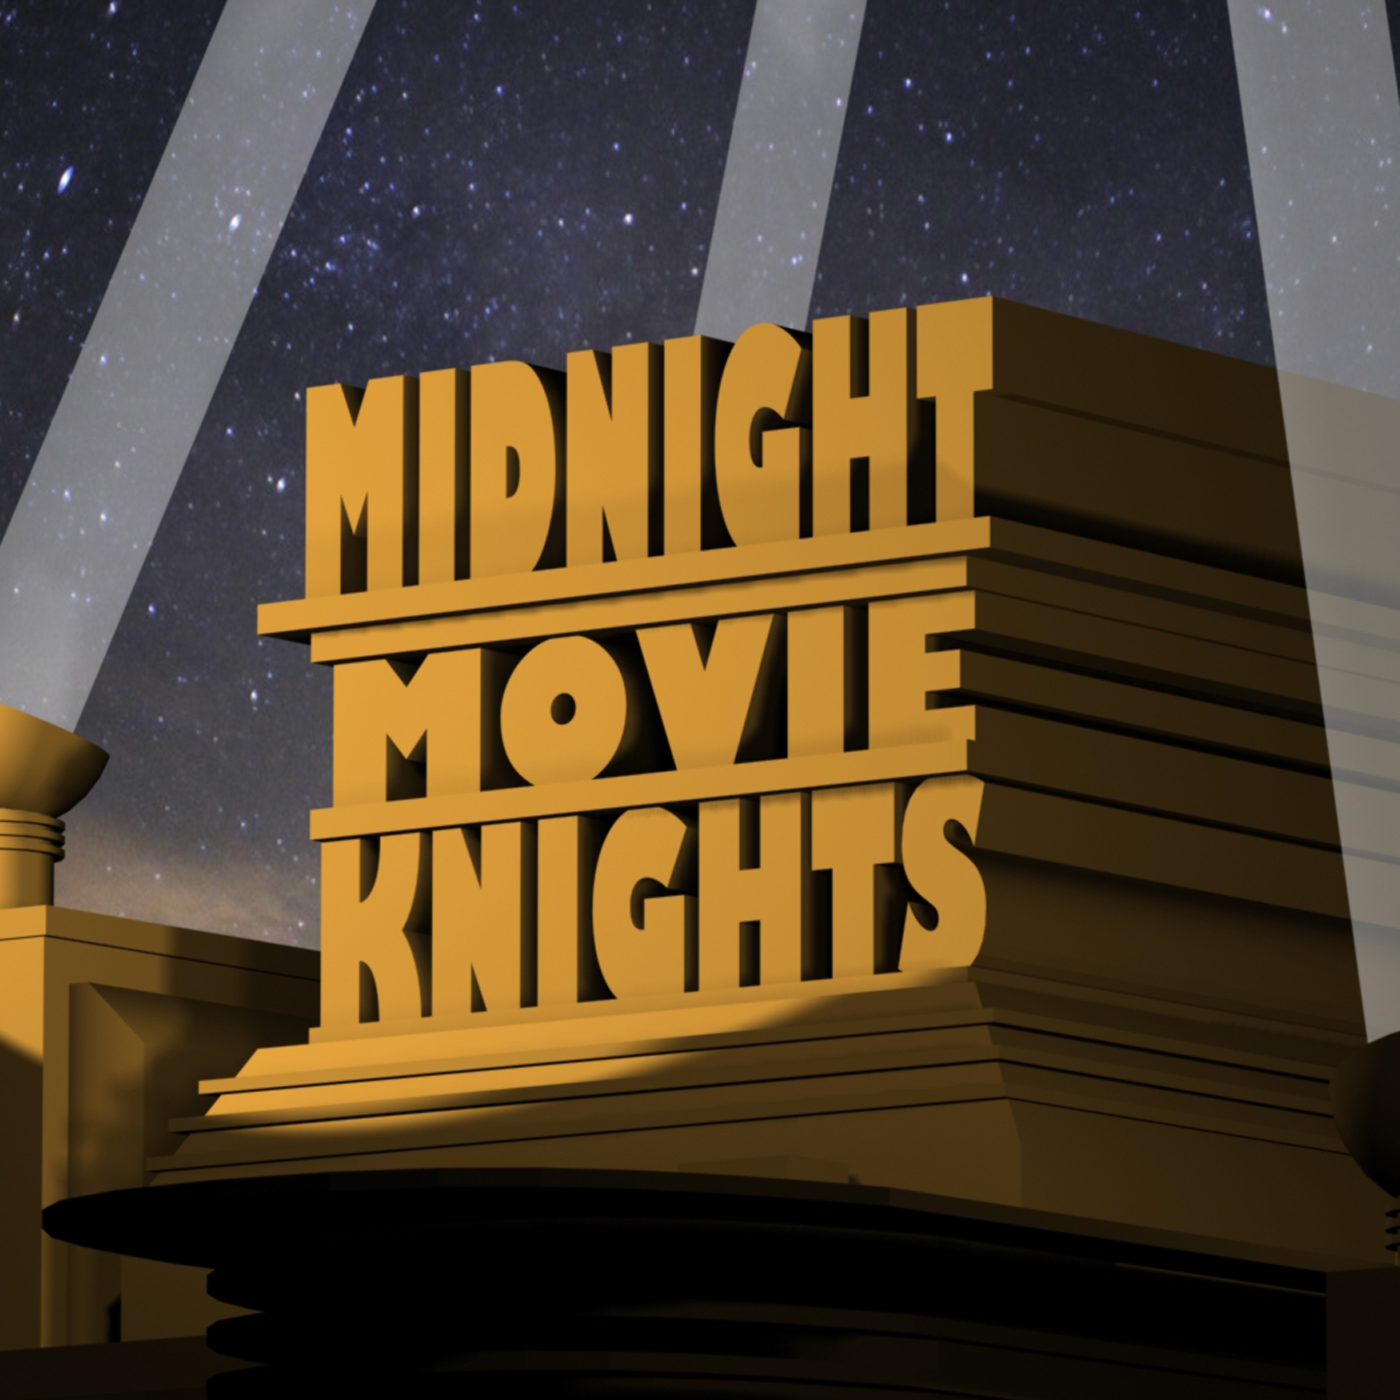 Midnight Movie Knights